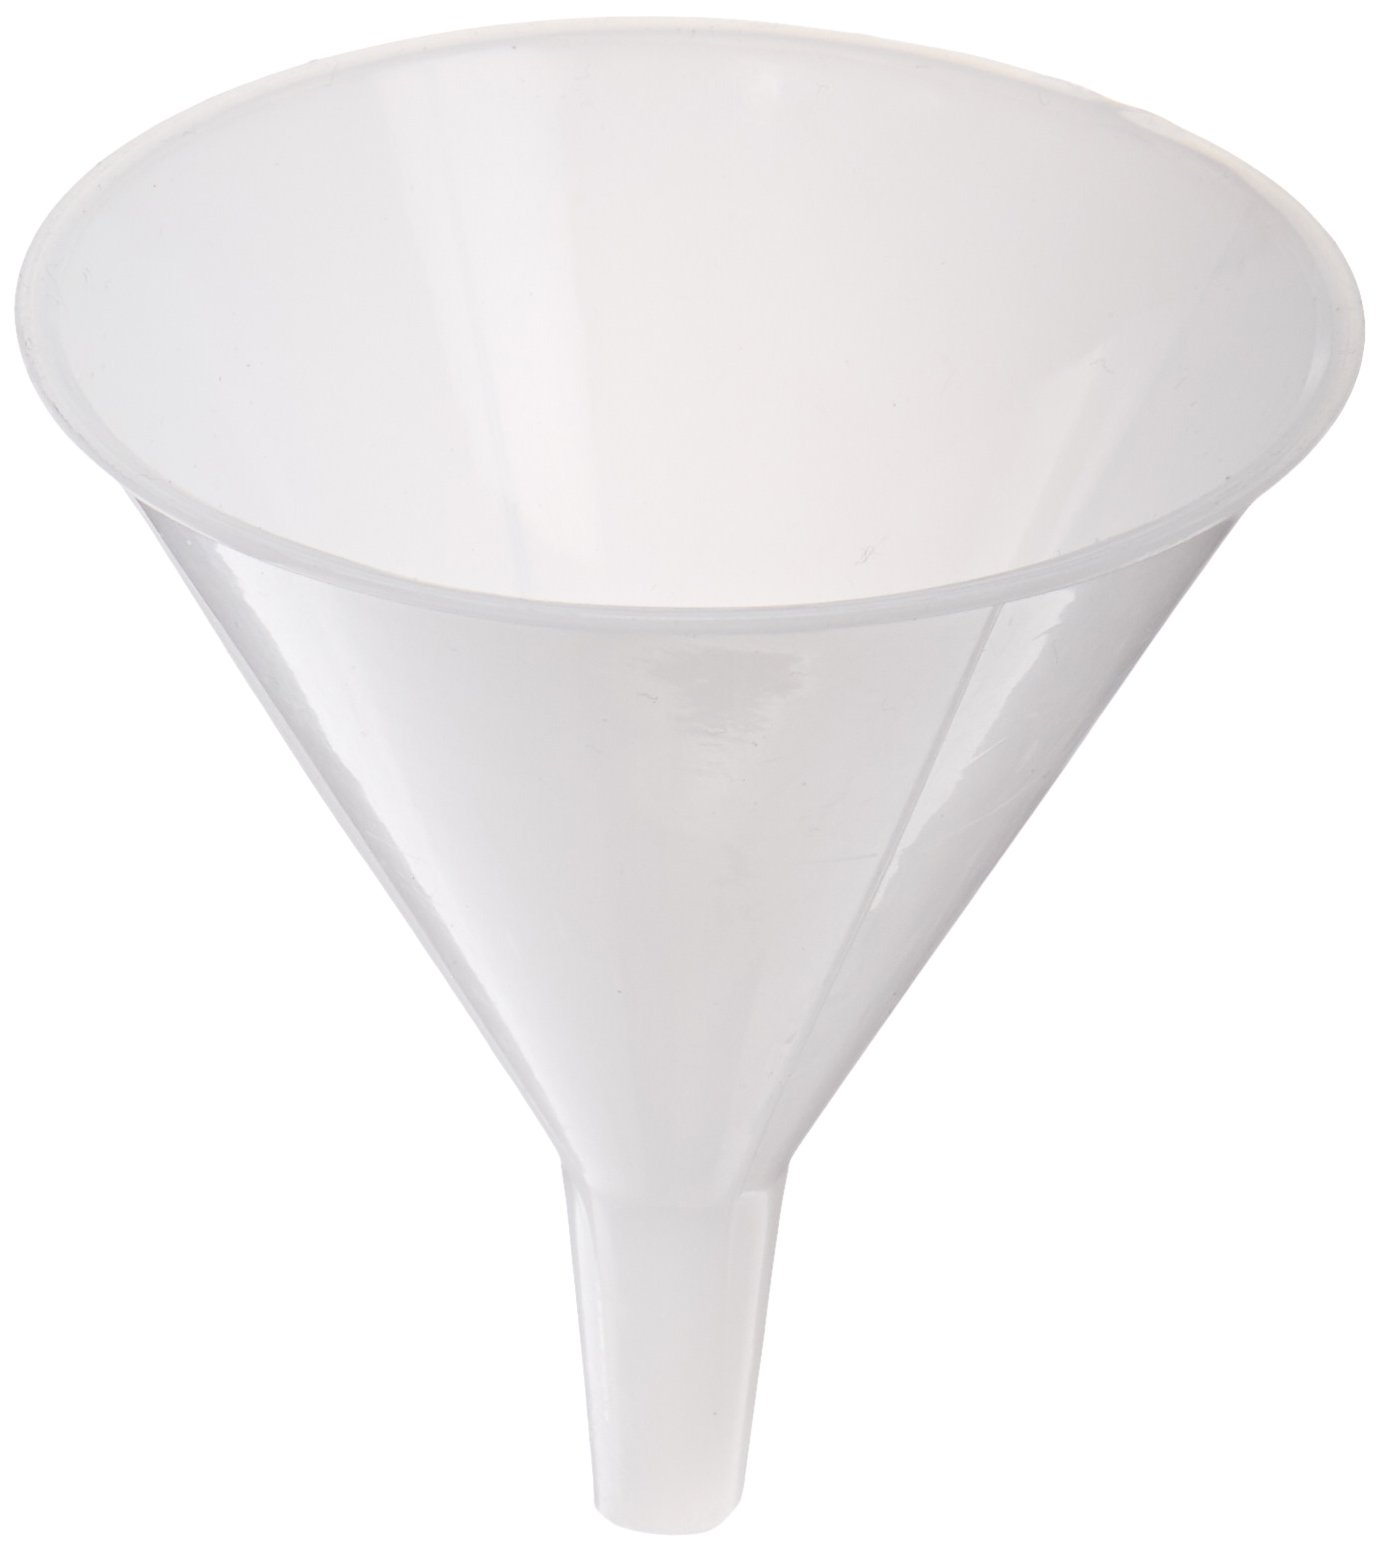 United Scientific FHD185 High Density Polyethylene Clear Short Stem Funnels, 85ml Capacity (Pack of 12) by United Scientific Supplies